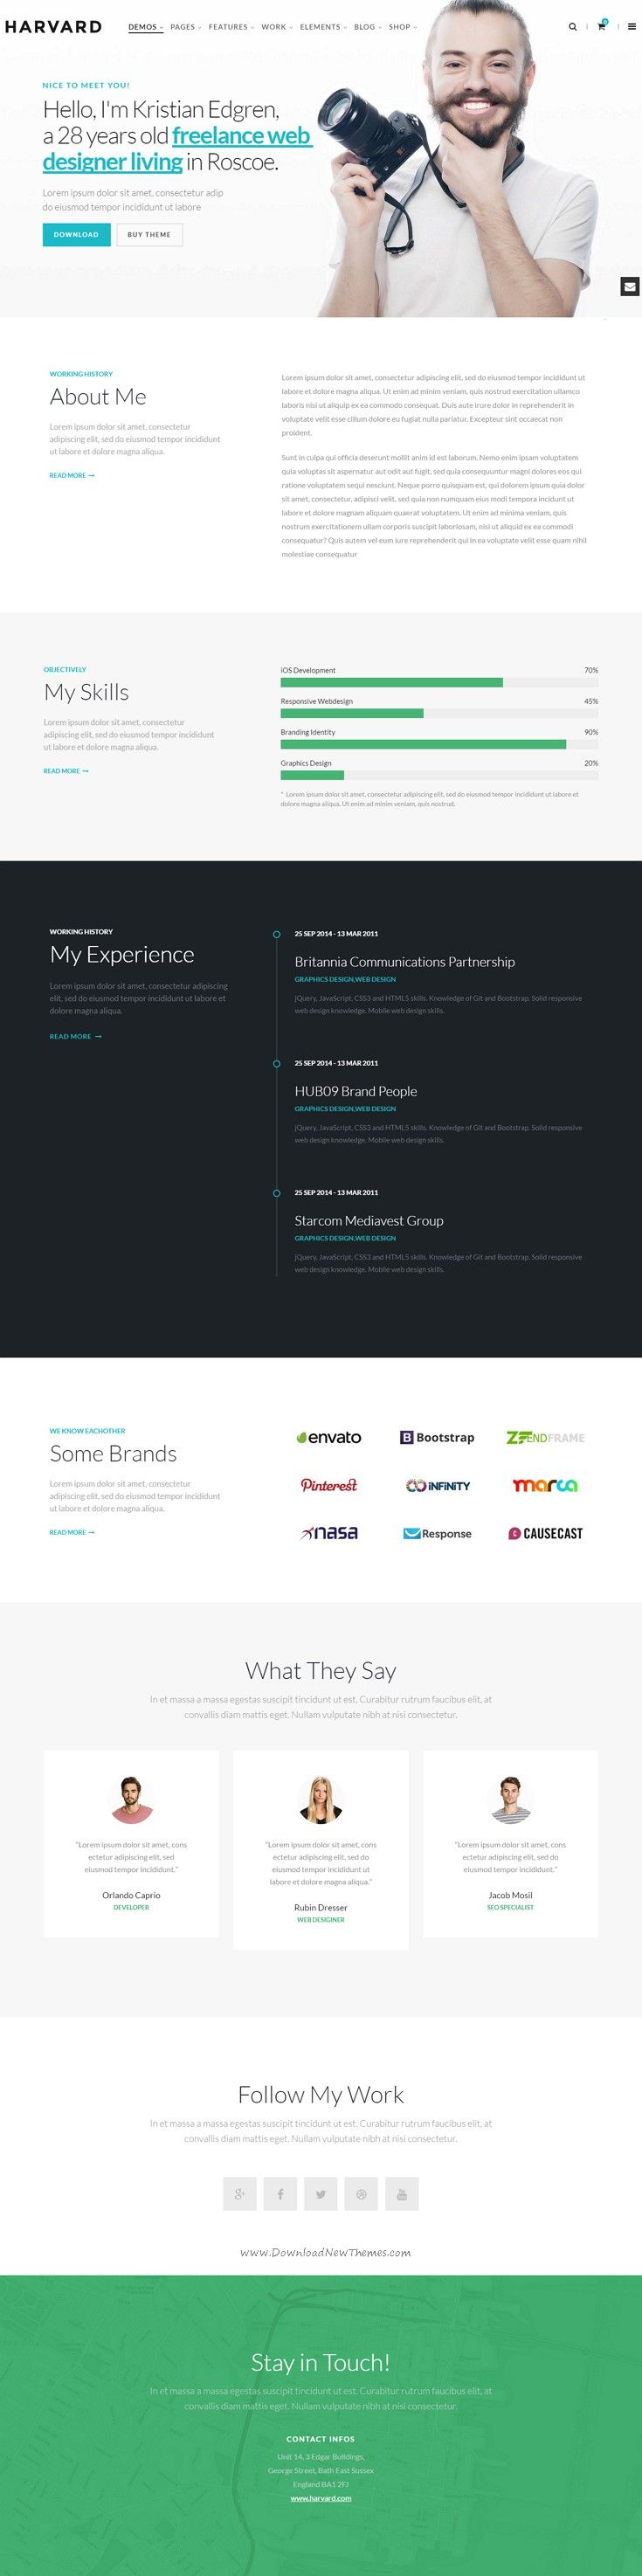 15 Best Online Cv Images On Pinterest Cleanses College Life And